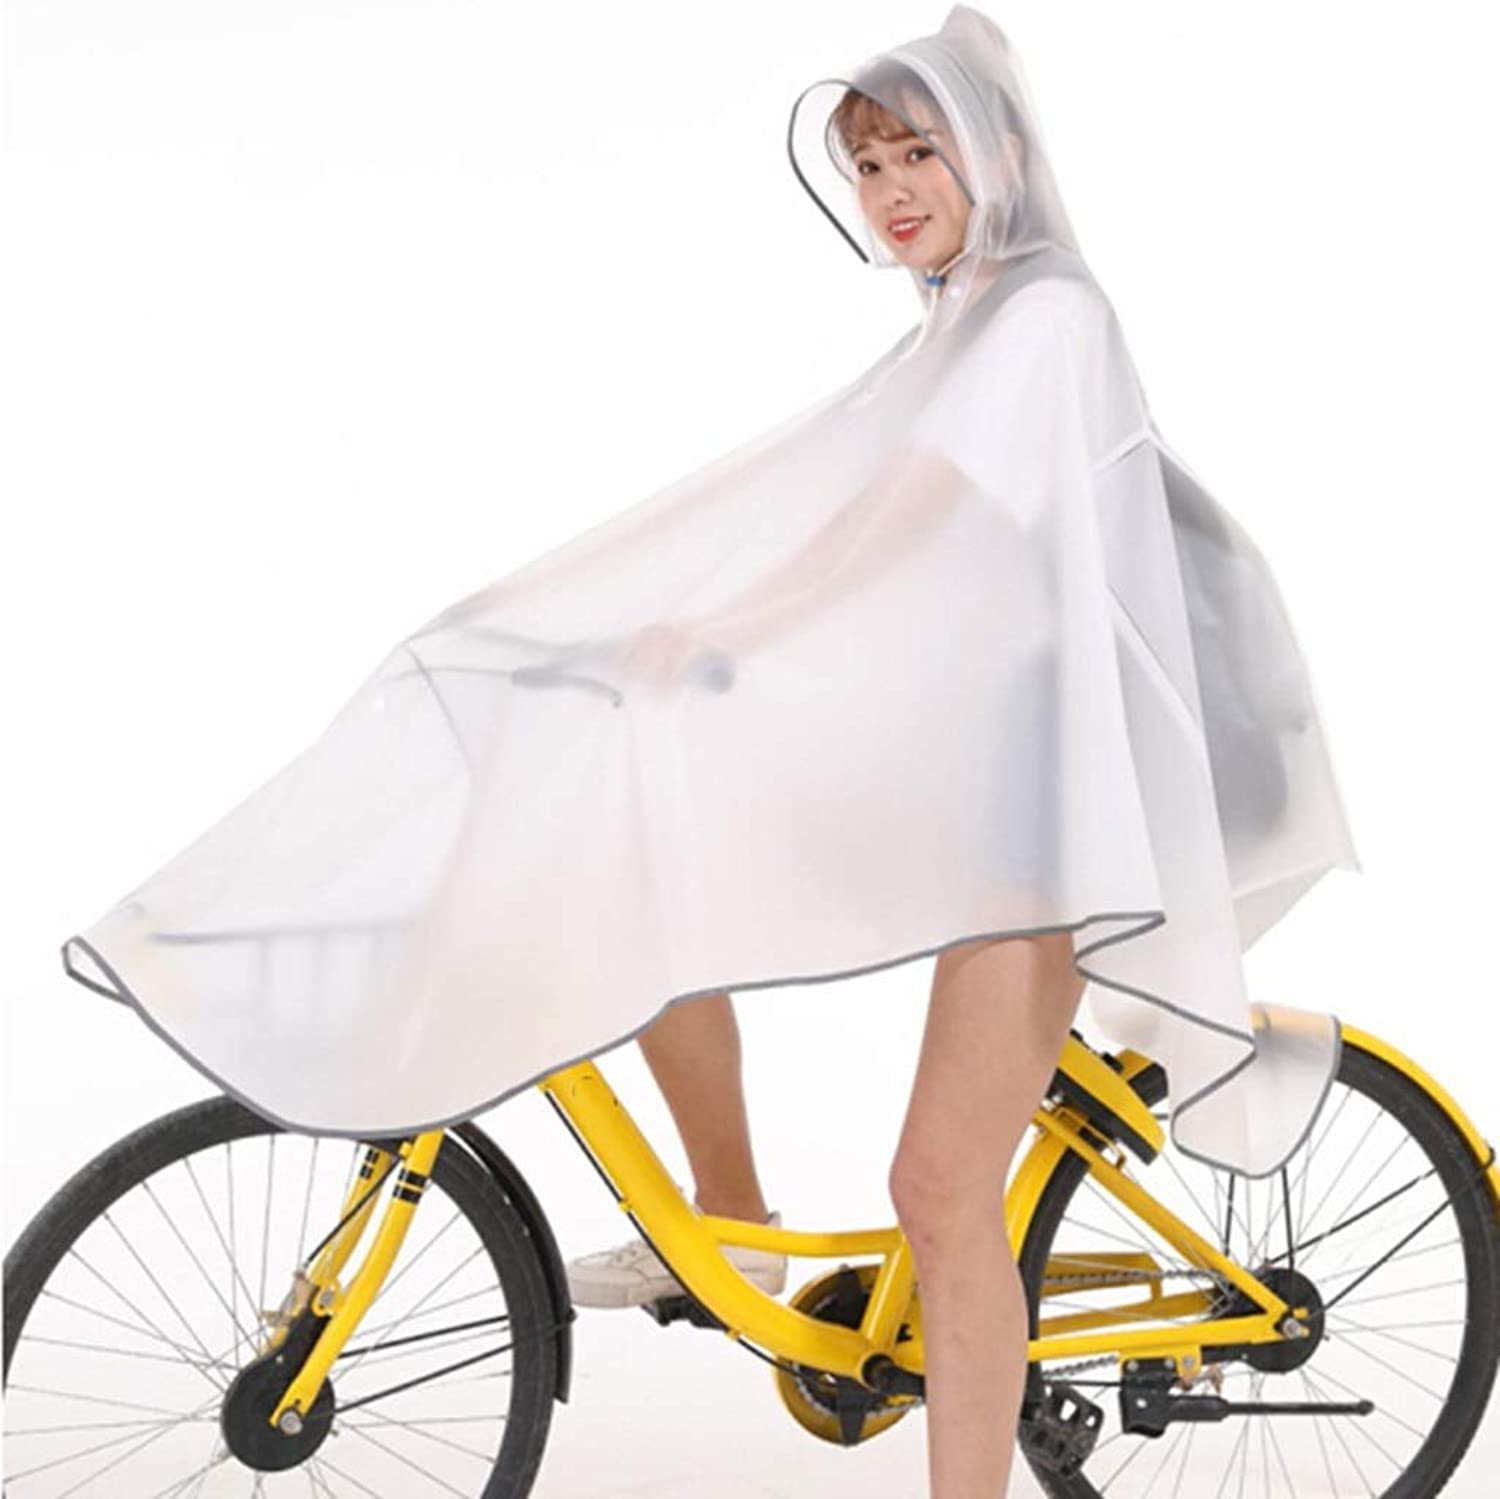 Bicycle Raincoat  EVA Poncho Waterproof Hooded Shirt for Men and Women Riding Rain Cover Outdoor Activity Neckline Adjustable